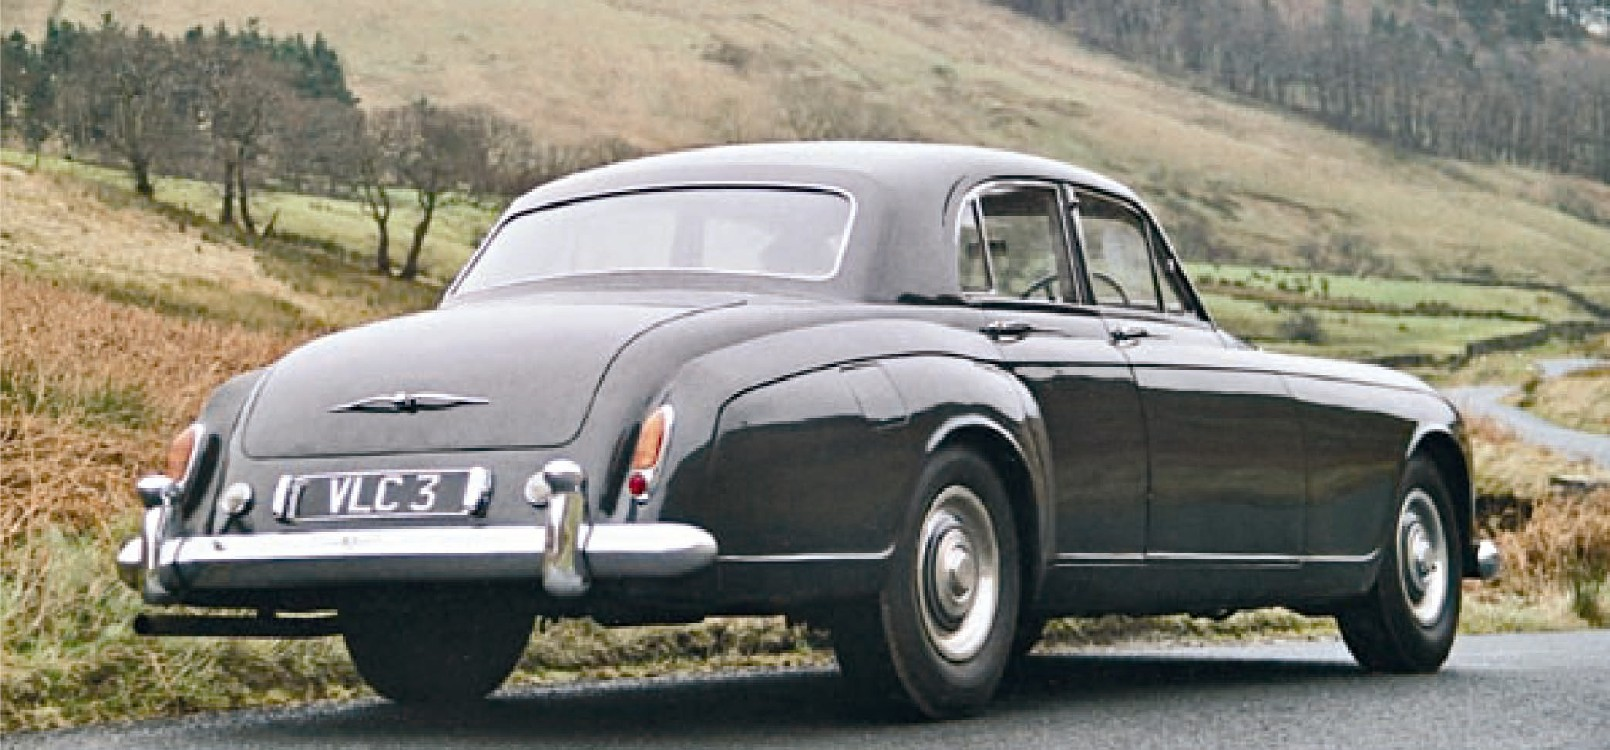 bentley s1 continental-pic. 3